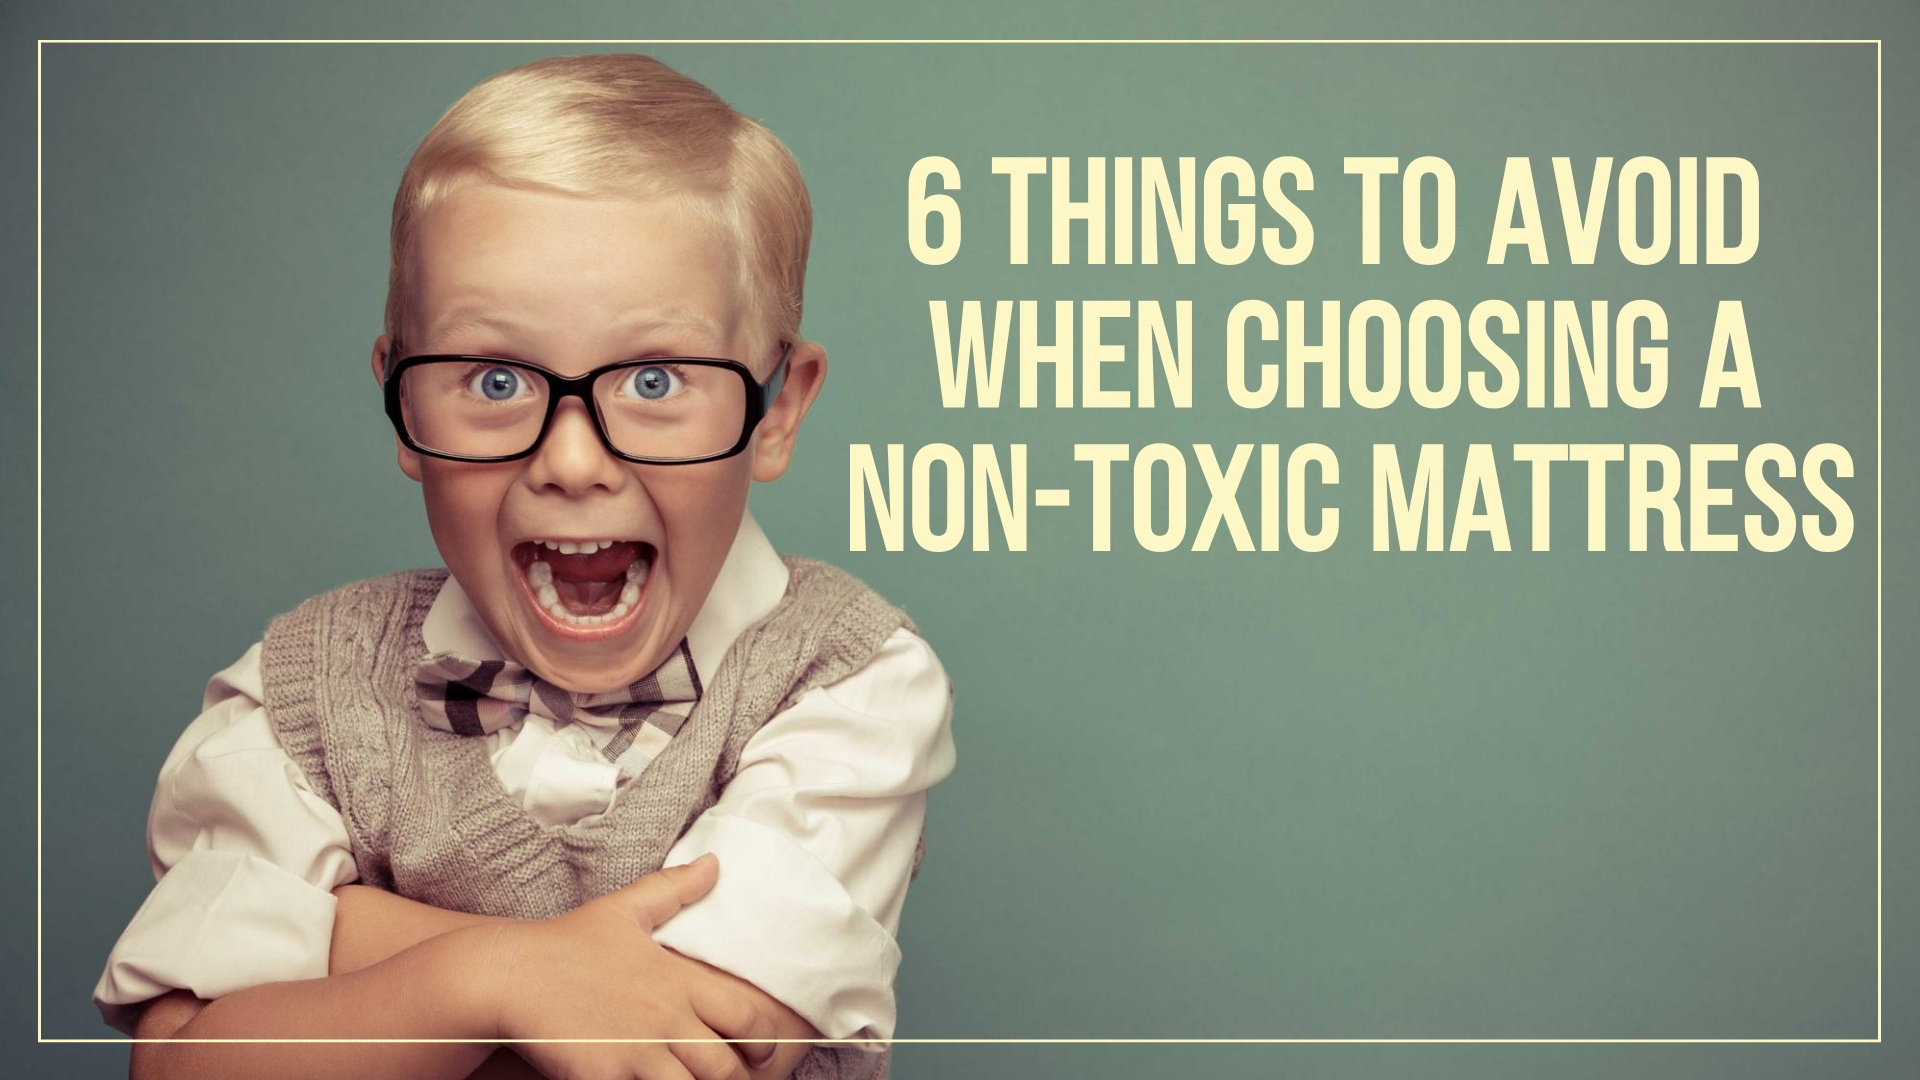 6 Things to Avoid when Choosing a Non-Toxic Mattress